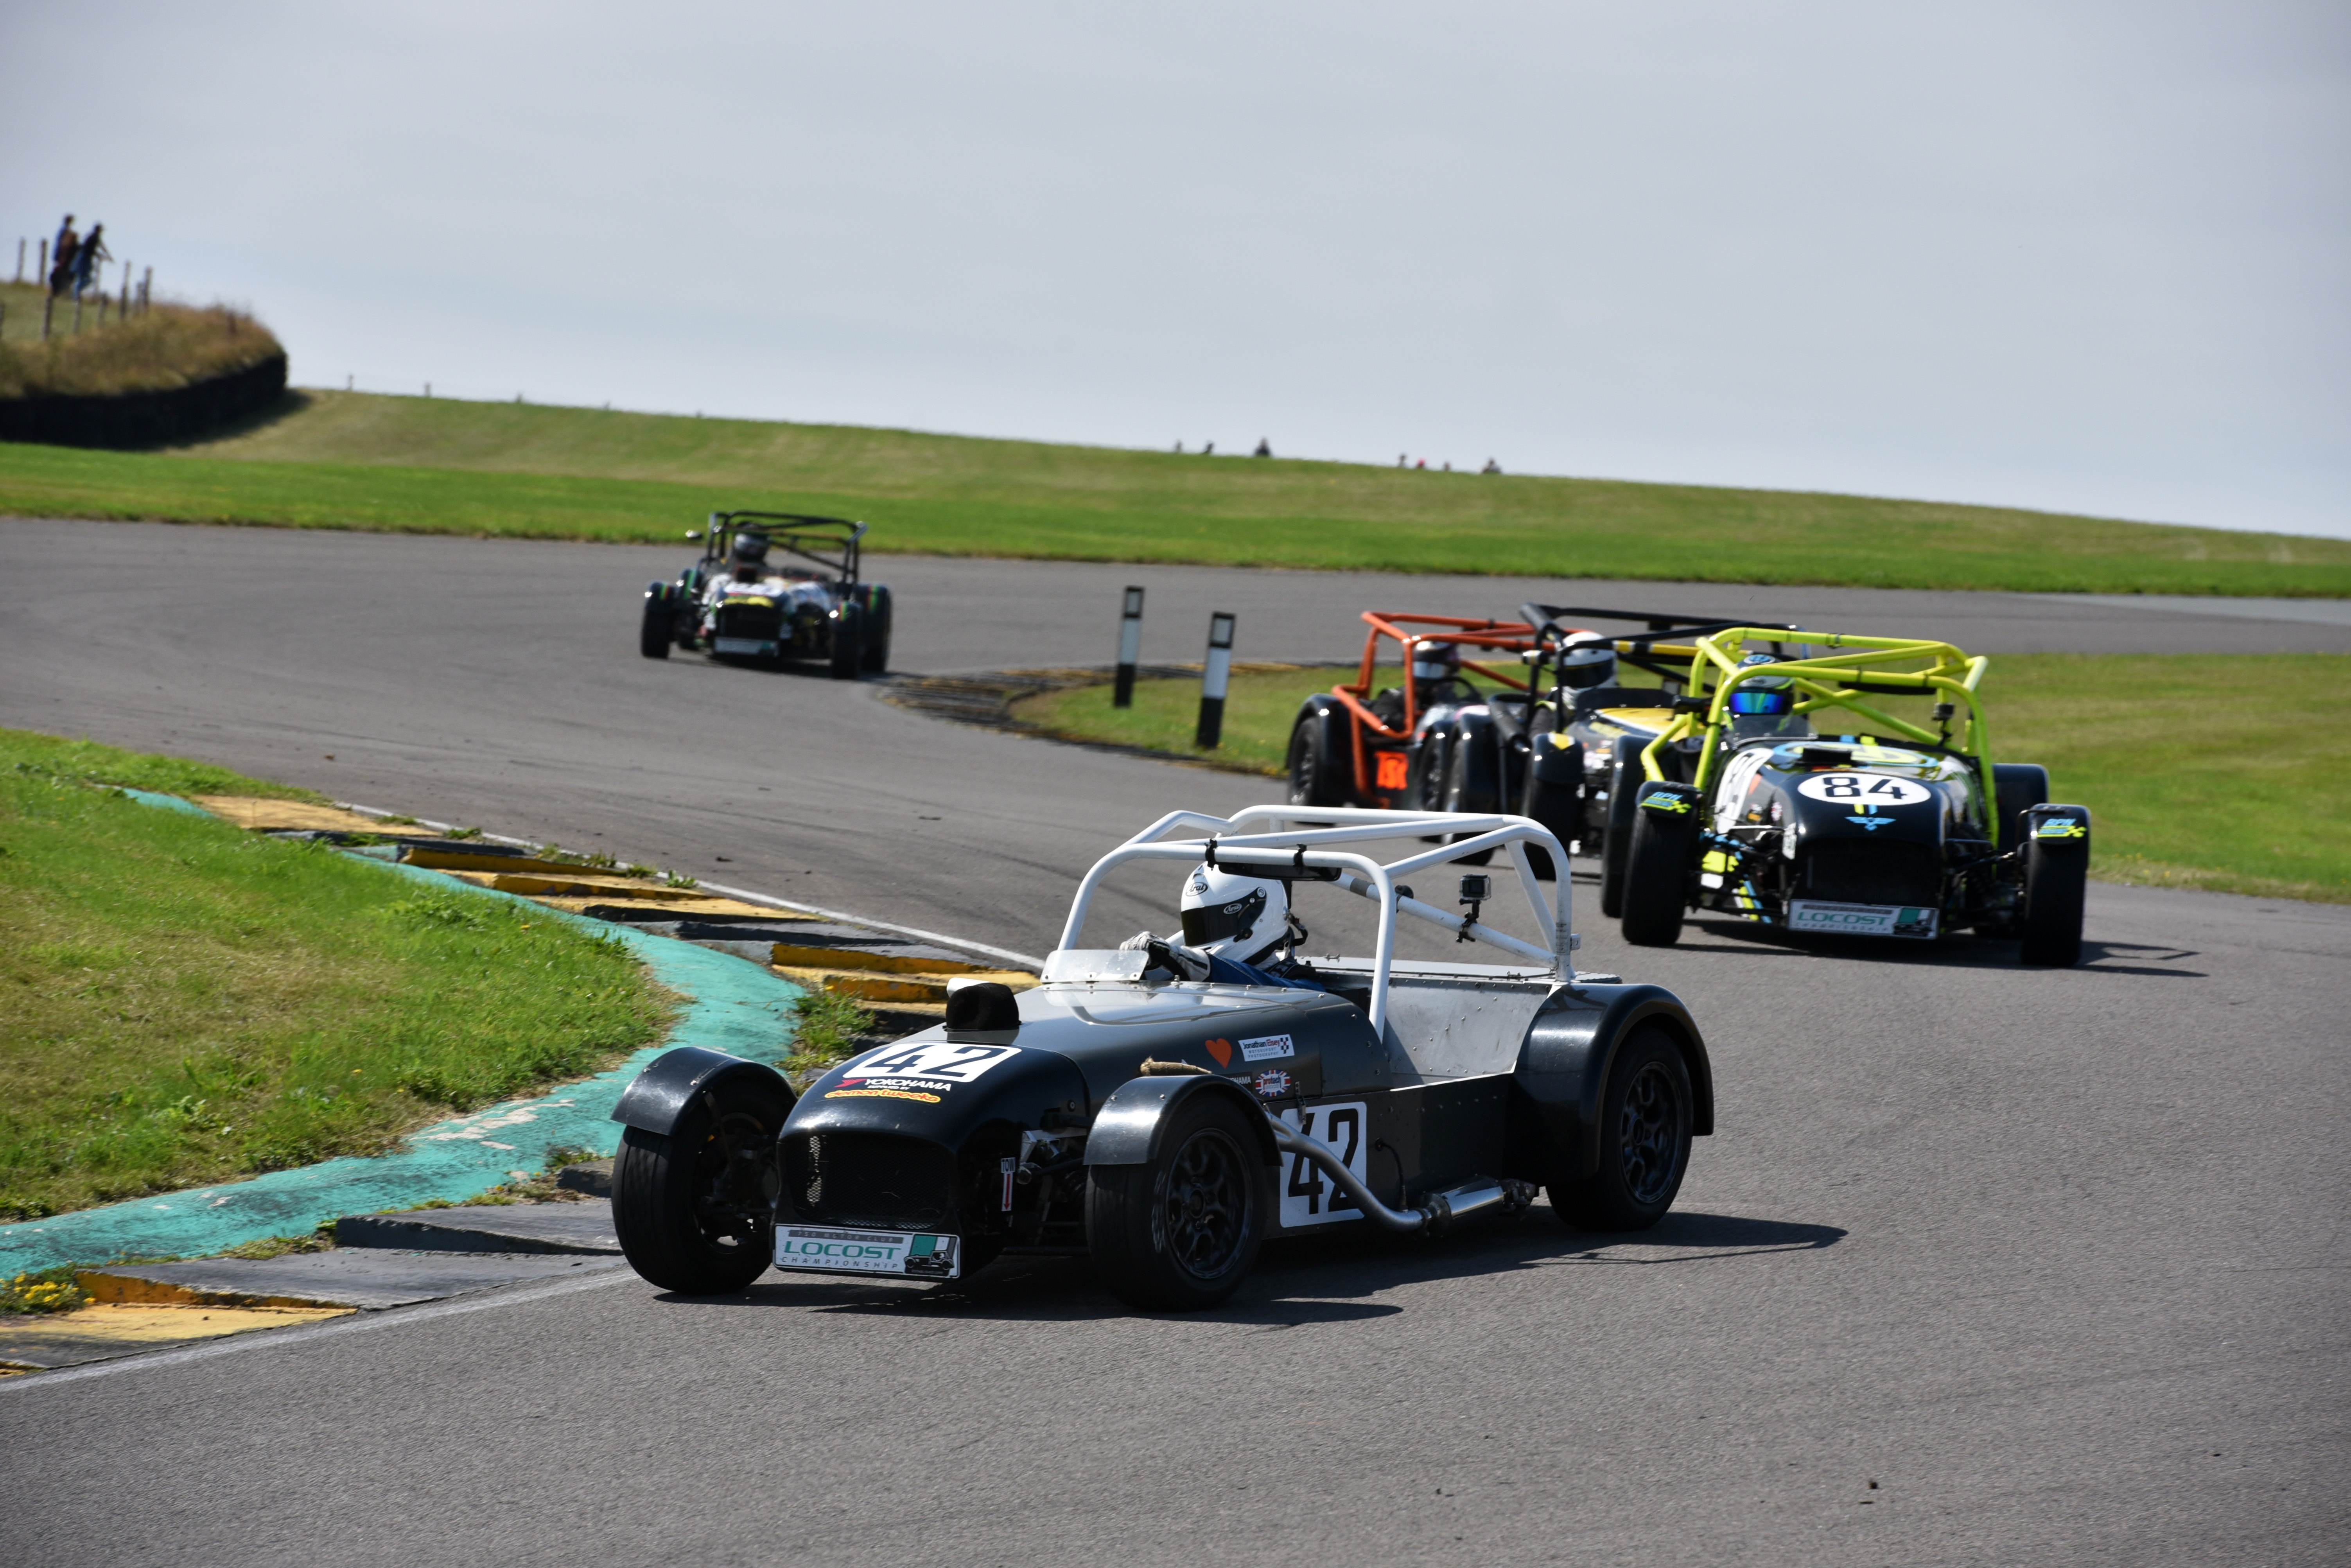 Andrew Tait was one of the Locost winners at Anglesey